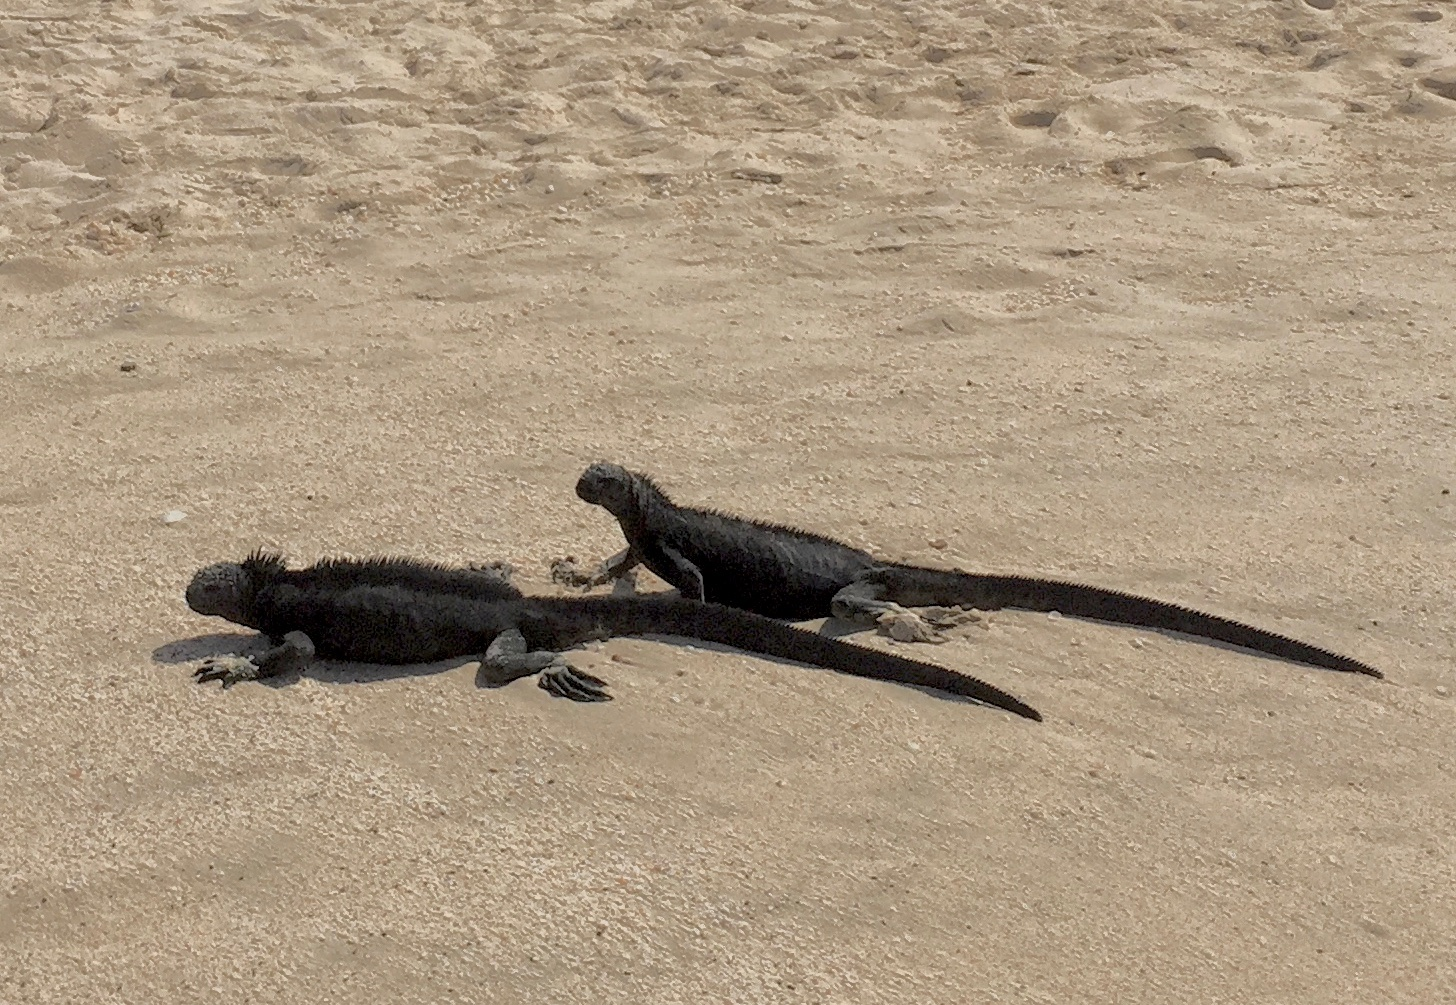 Marine iguanas are a common site on the Galapagos Islands, including here on the north coast of Santa Cruz Island.